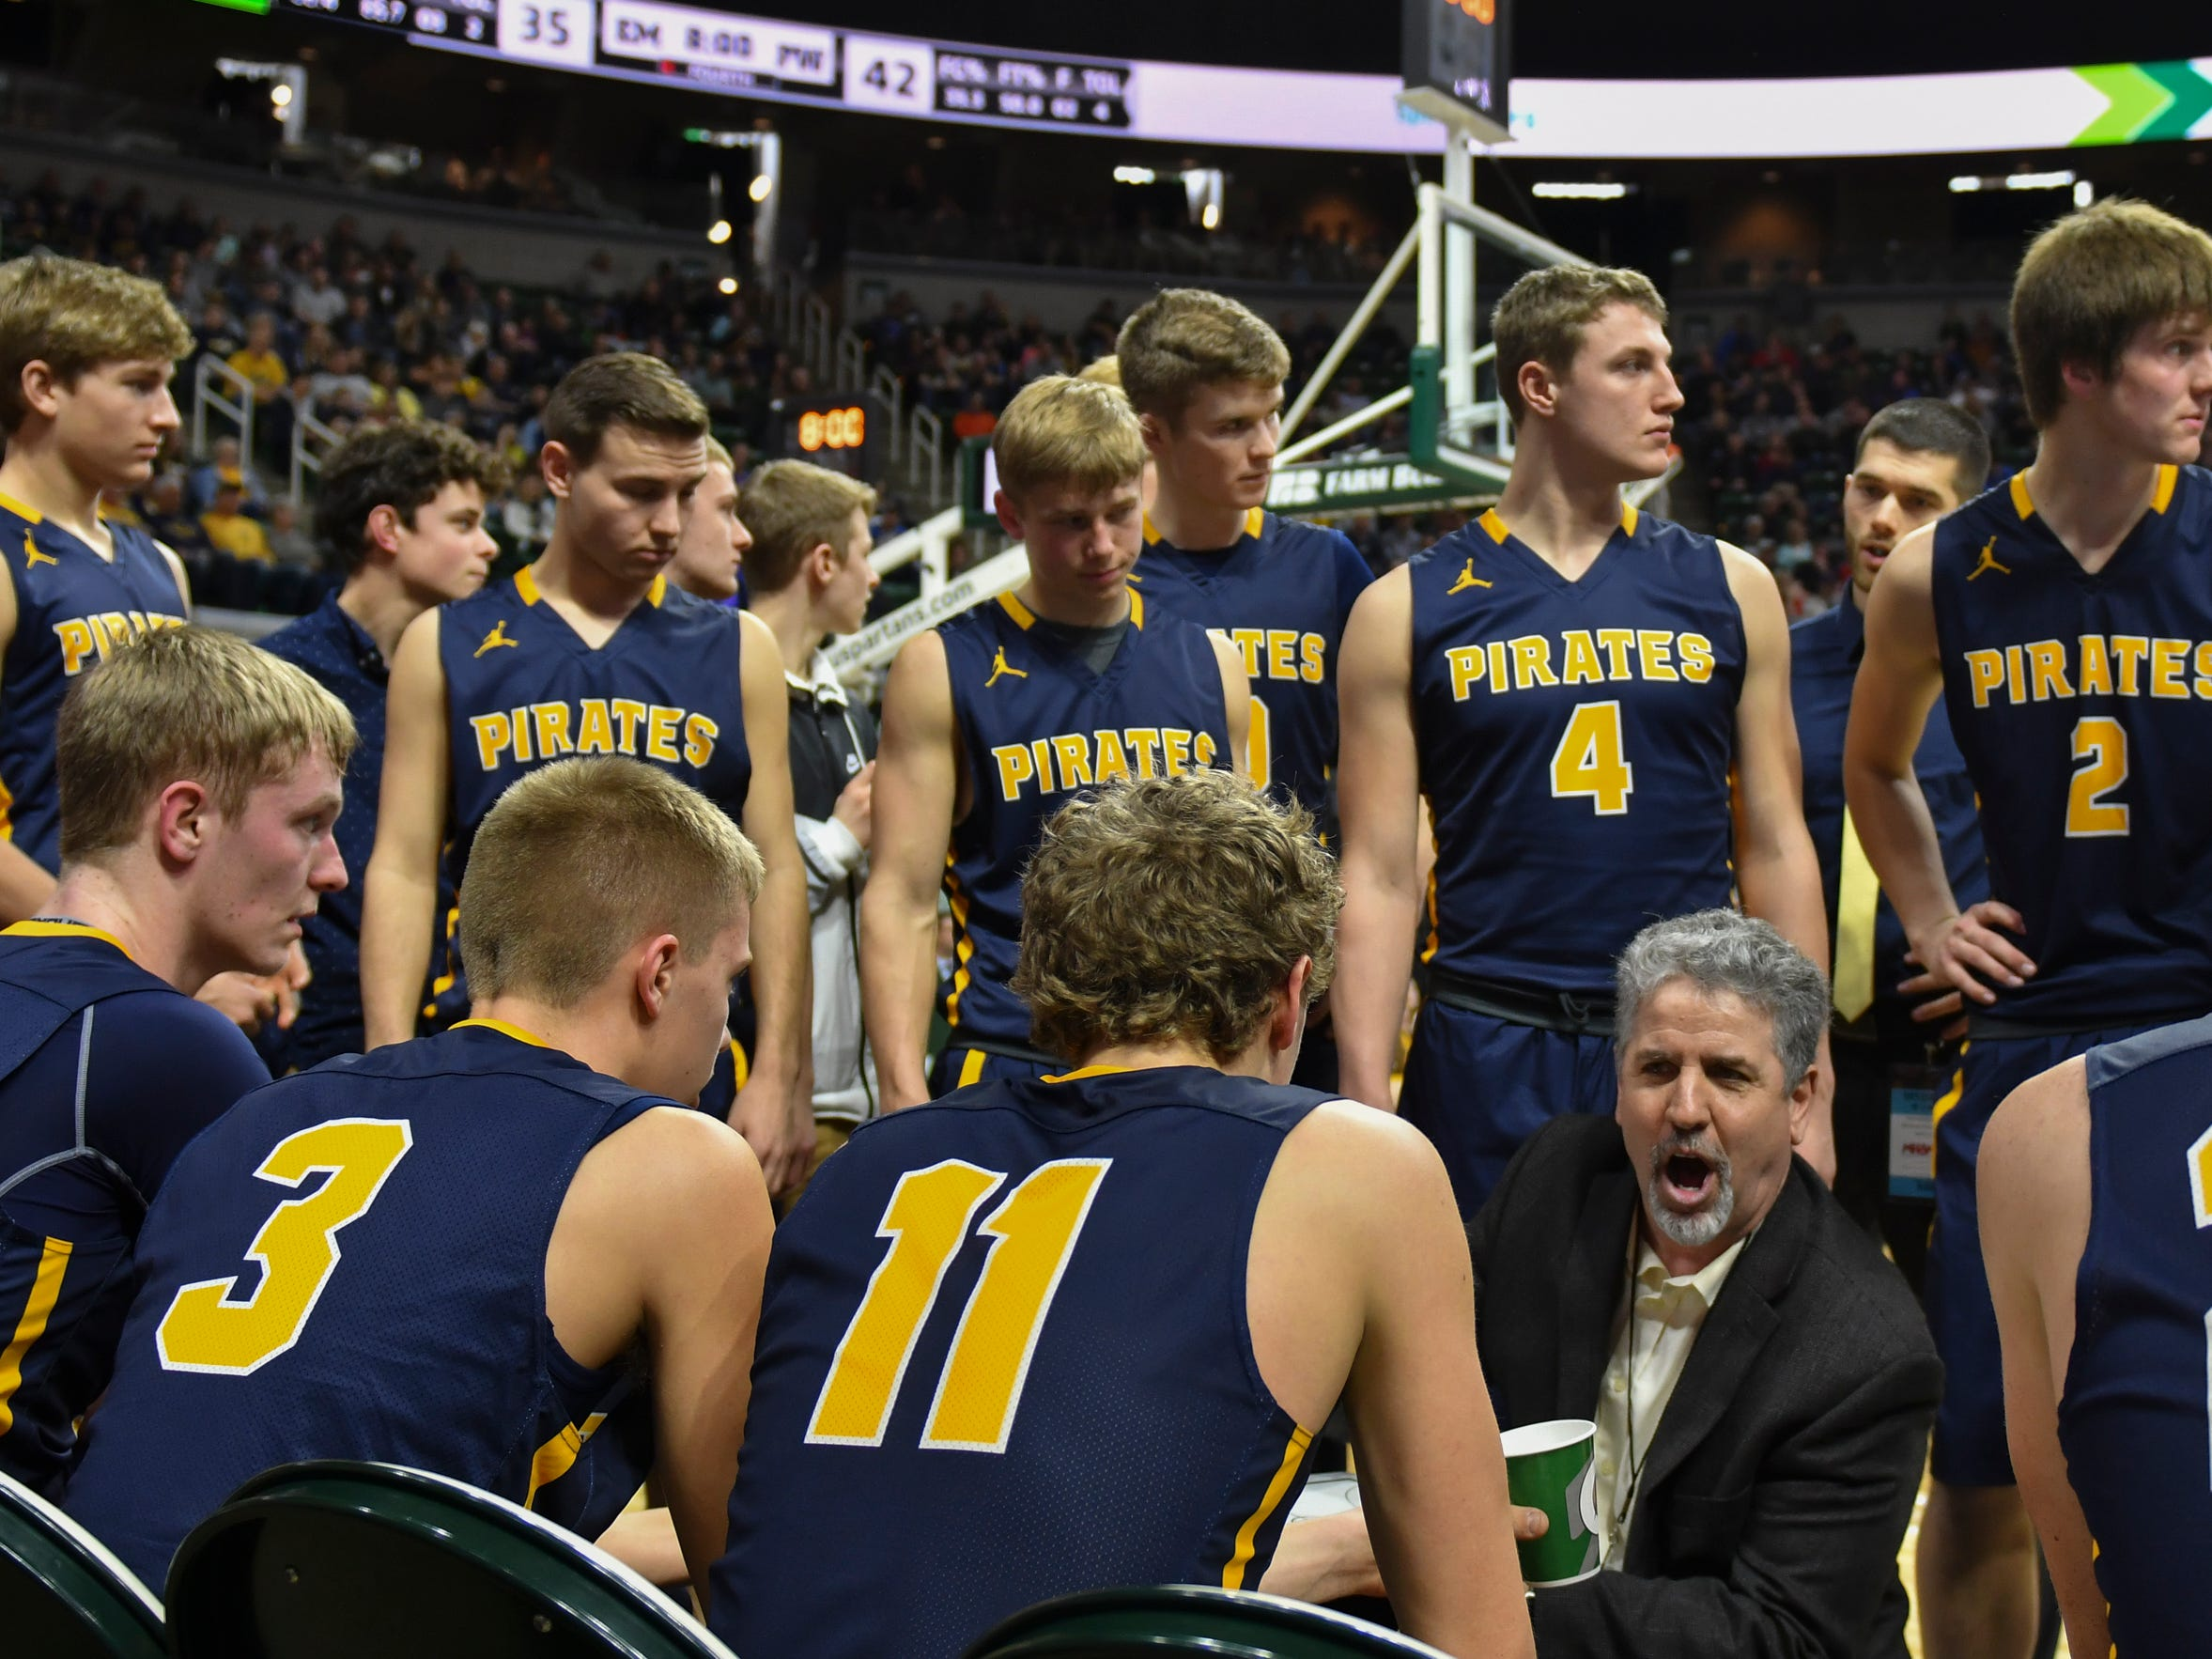 P-W coach Luke Pohl coaches during a timeout against Erie-Mason, Thursday, March 14, 2019, during the MHSAA Div. 3 state semifinal at the Breslin Center in East Lansing.   P-W earned a berth in the state final winning 60-45.